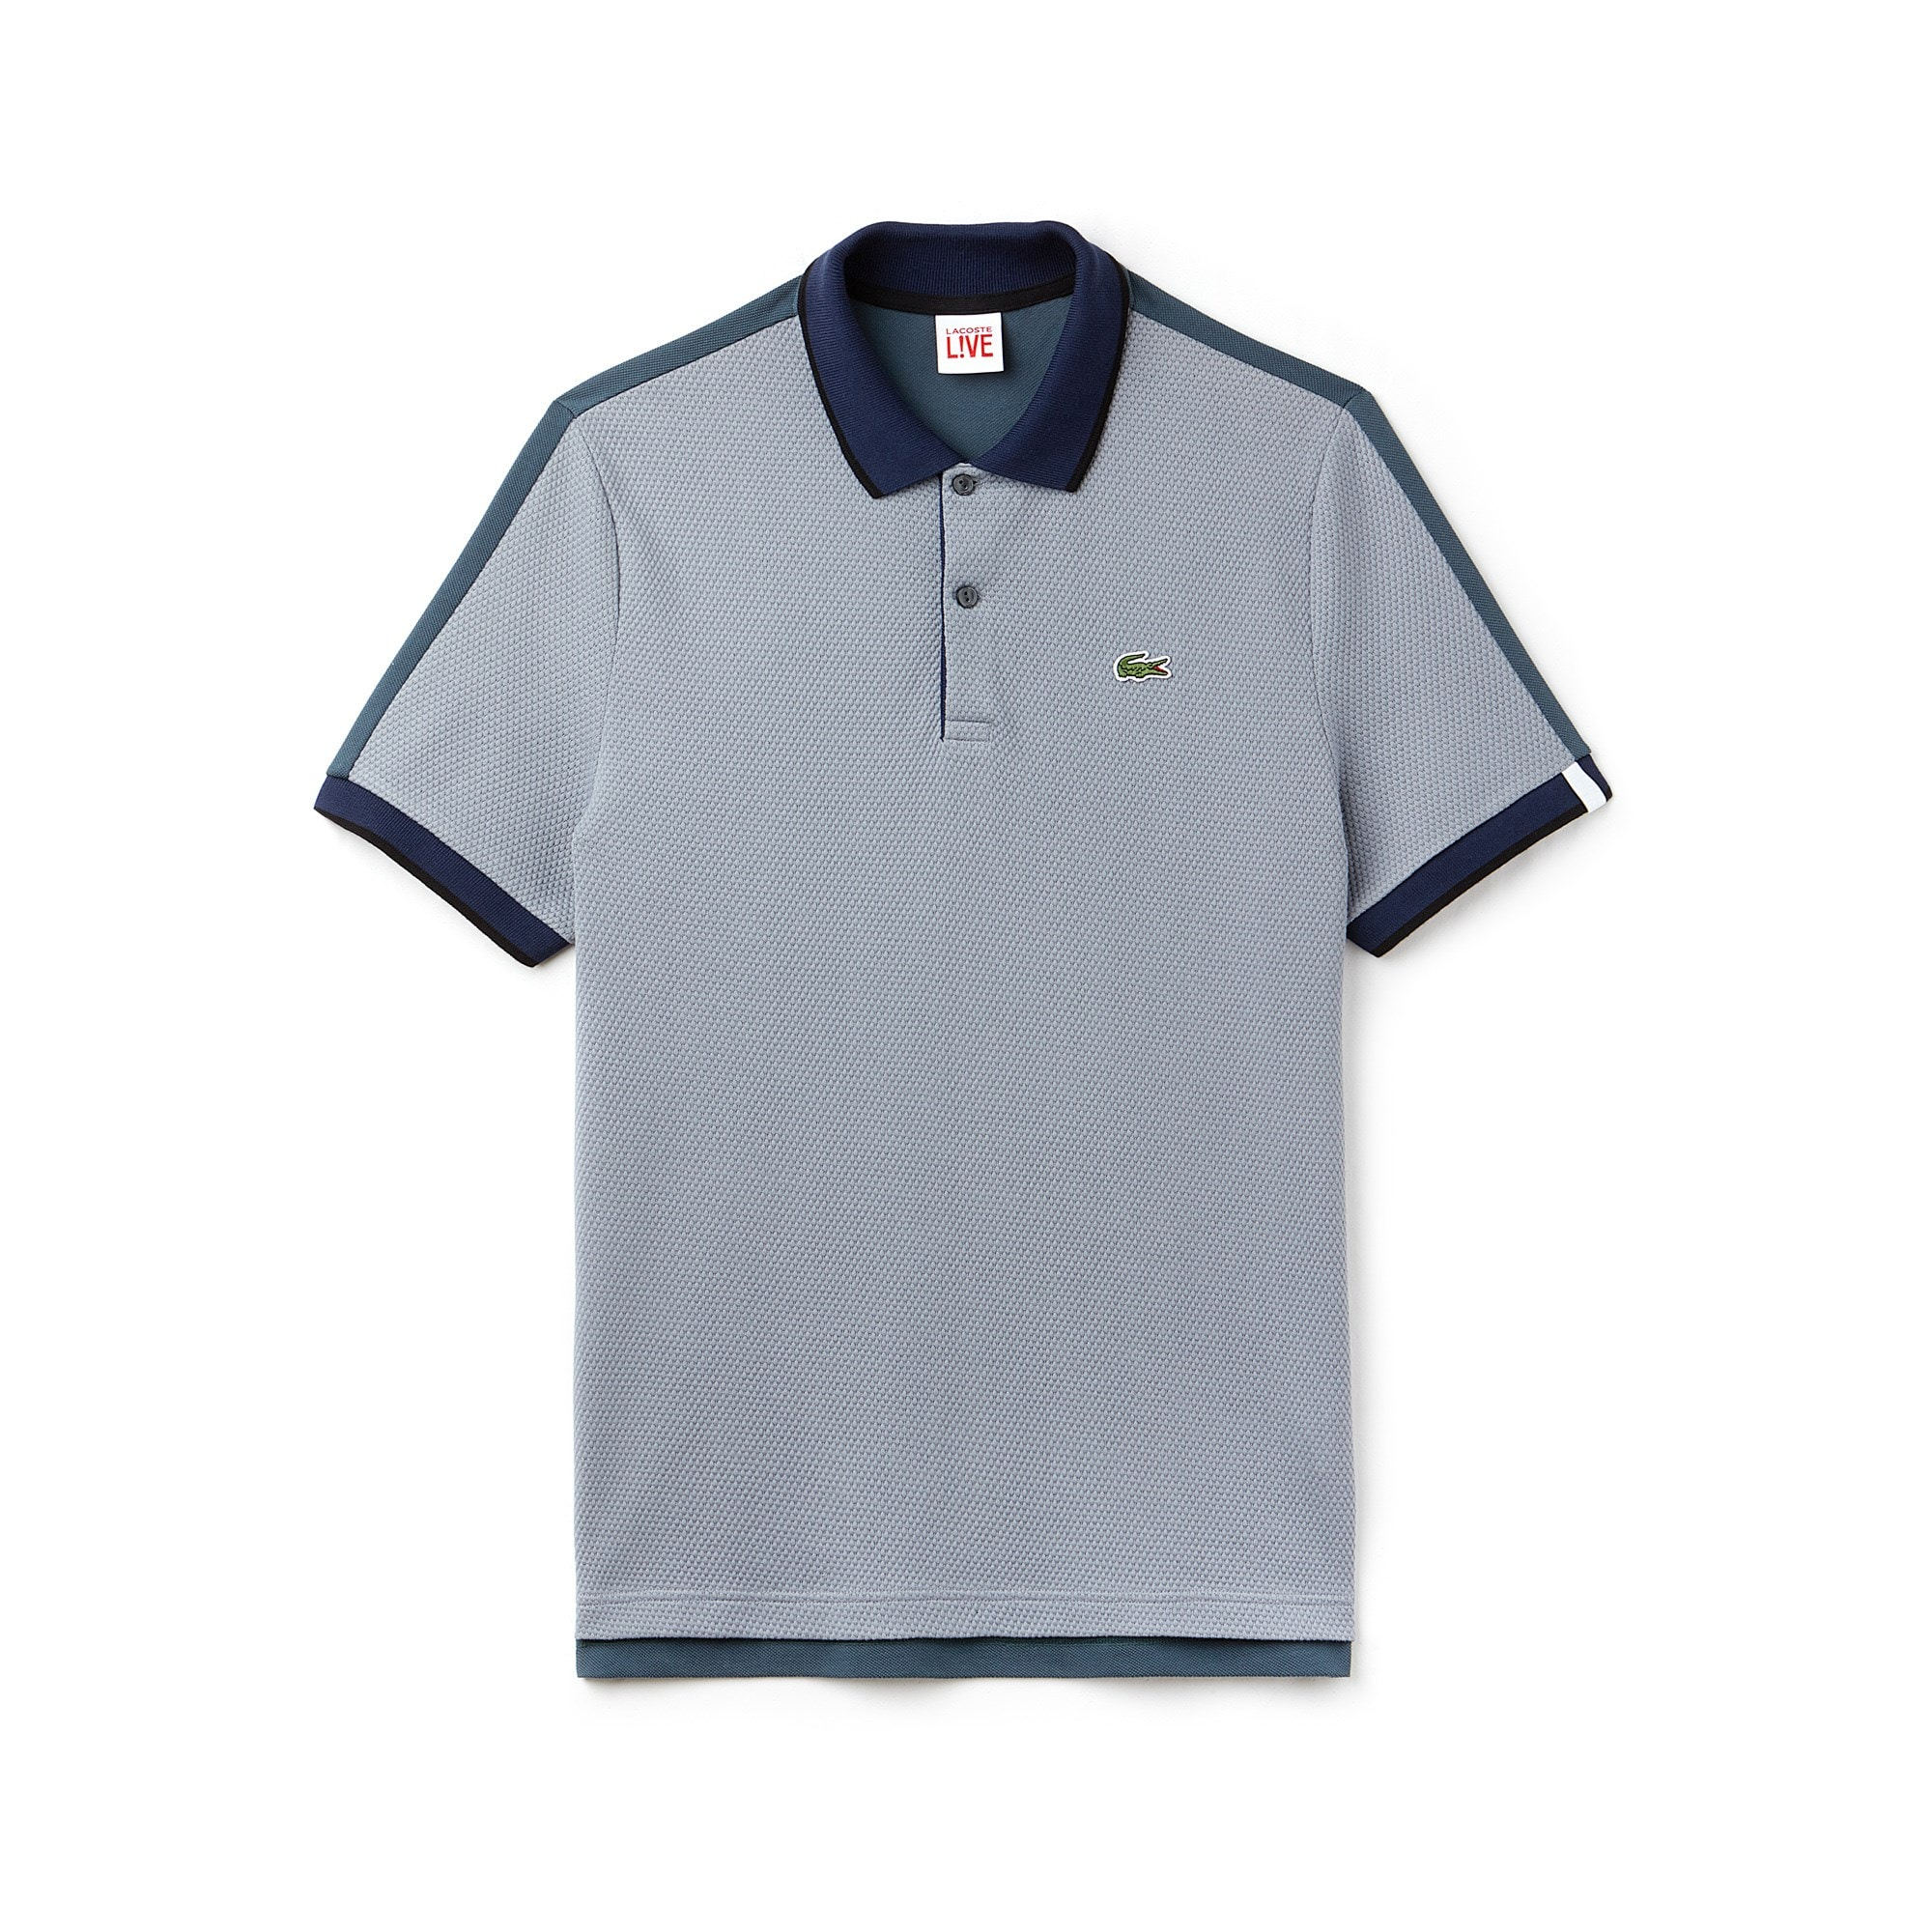 Men's Lacoste LIVE Slim Fit Colorblock Cotton Knit Polo Shirt